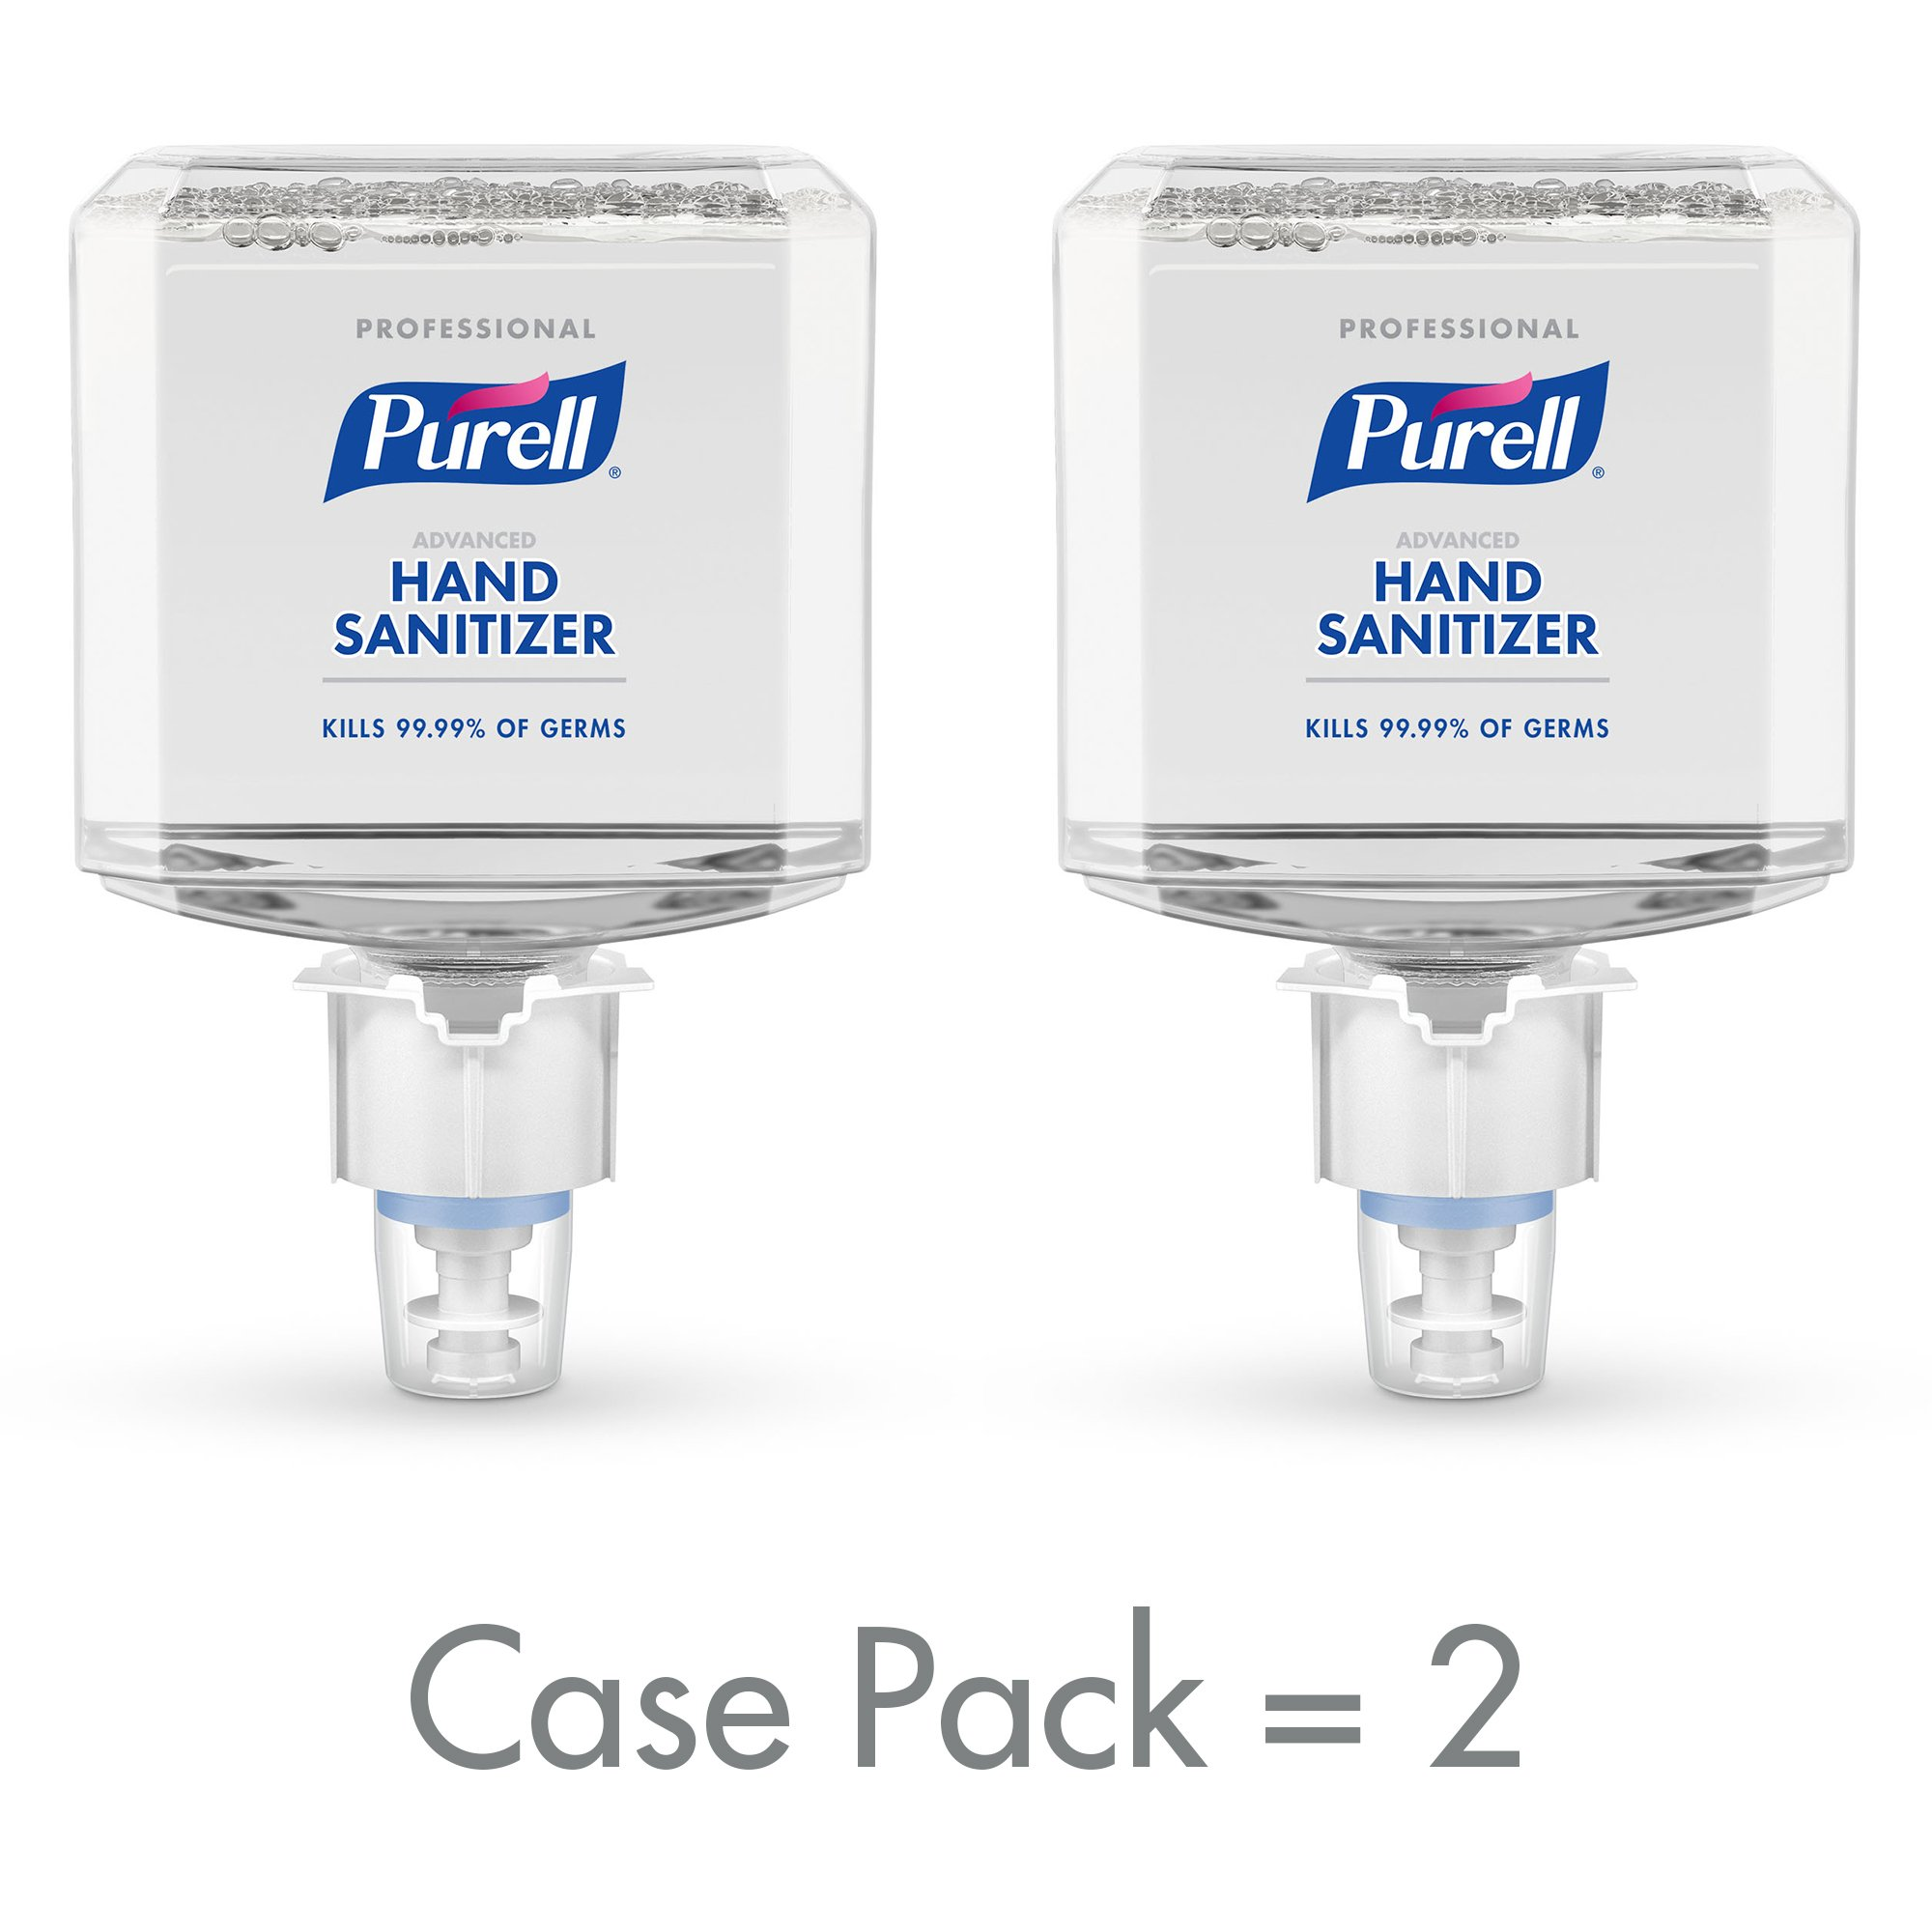 PURELL Professional Advanced Hand Sanitizer Foam Refill, 1200mL Refill for ES6 Hand Sanitizer Dispenser - by Purell (Image #3)